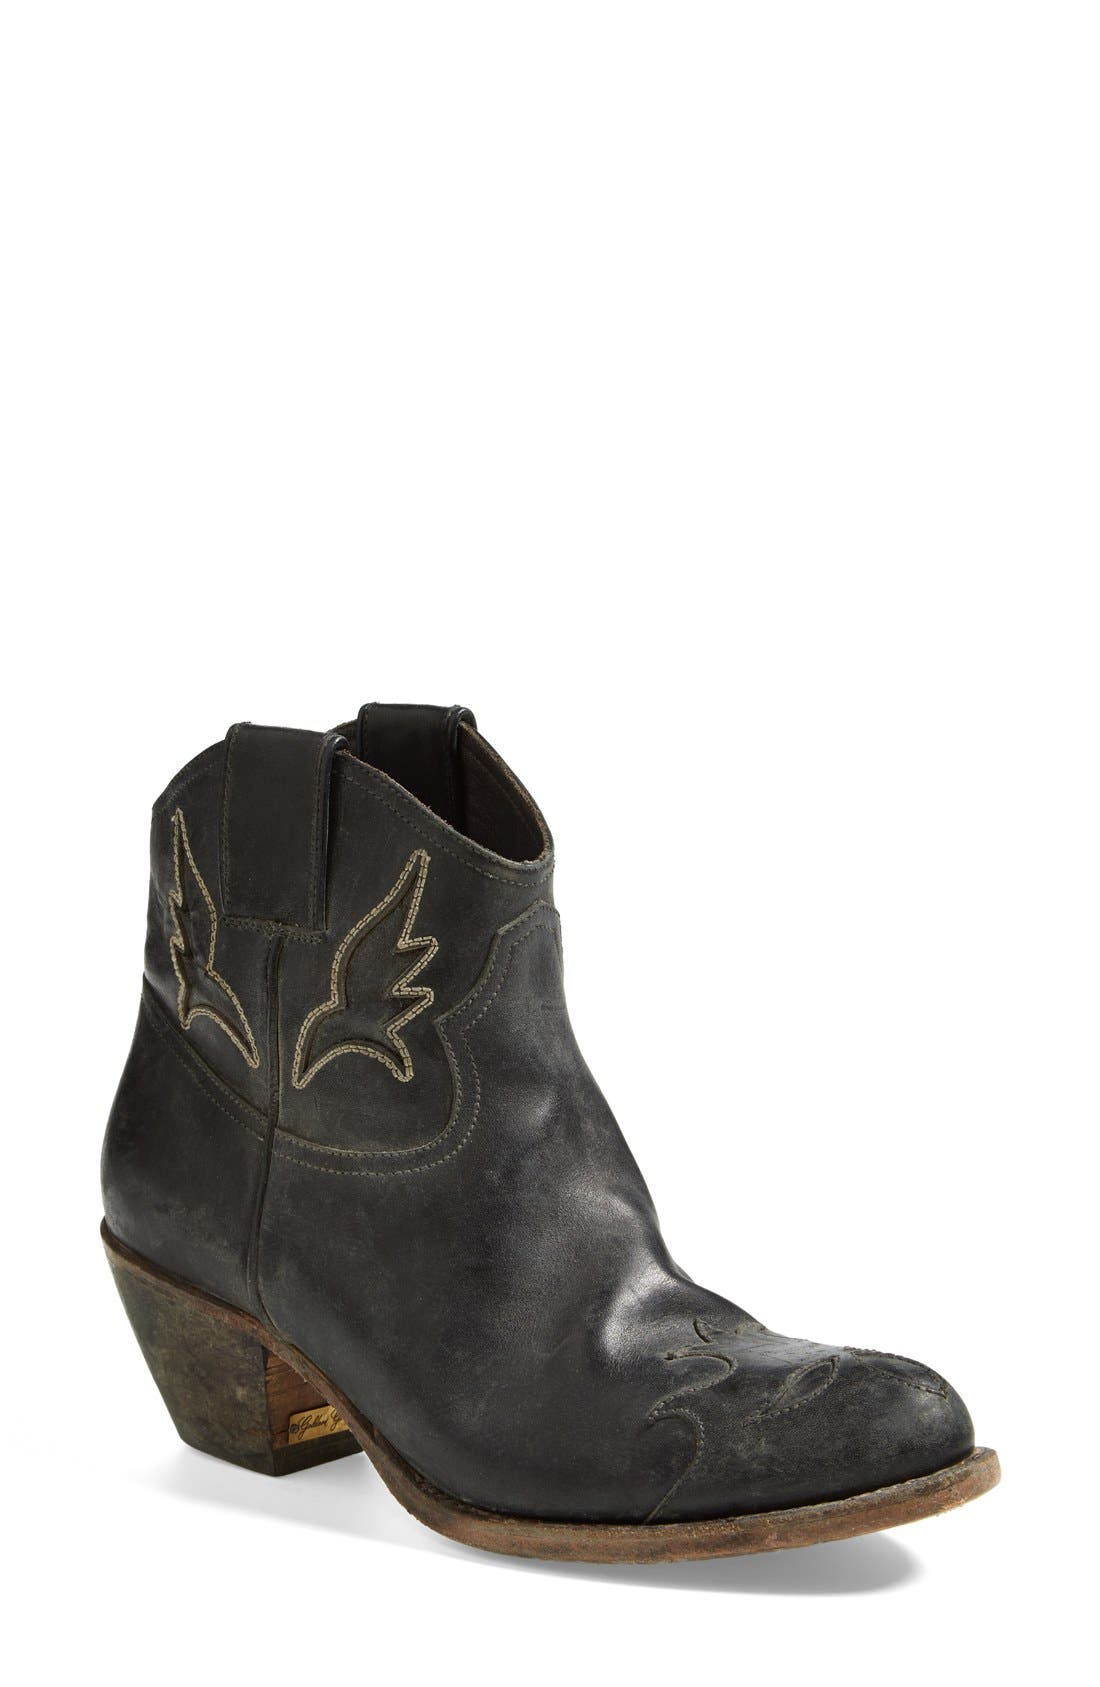 Main Image - Golden Goose 'Sydney' Western Boot (Women)